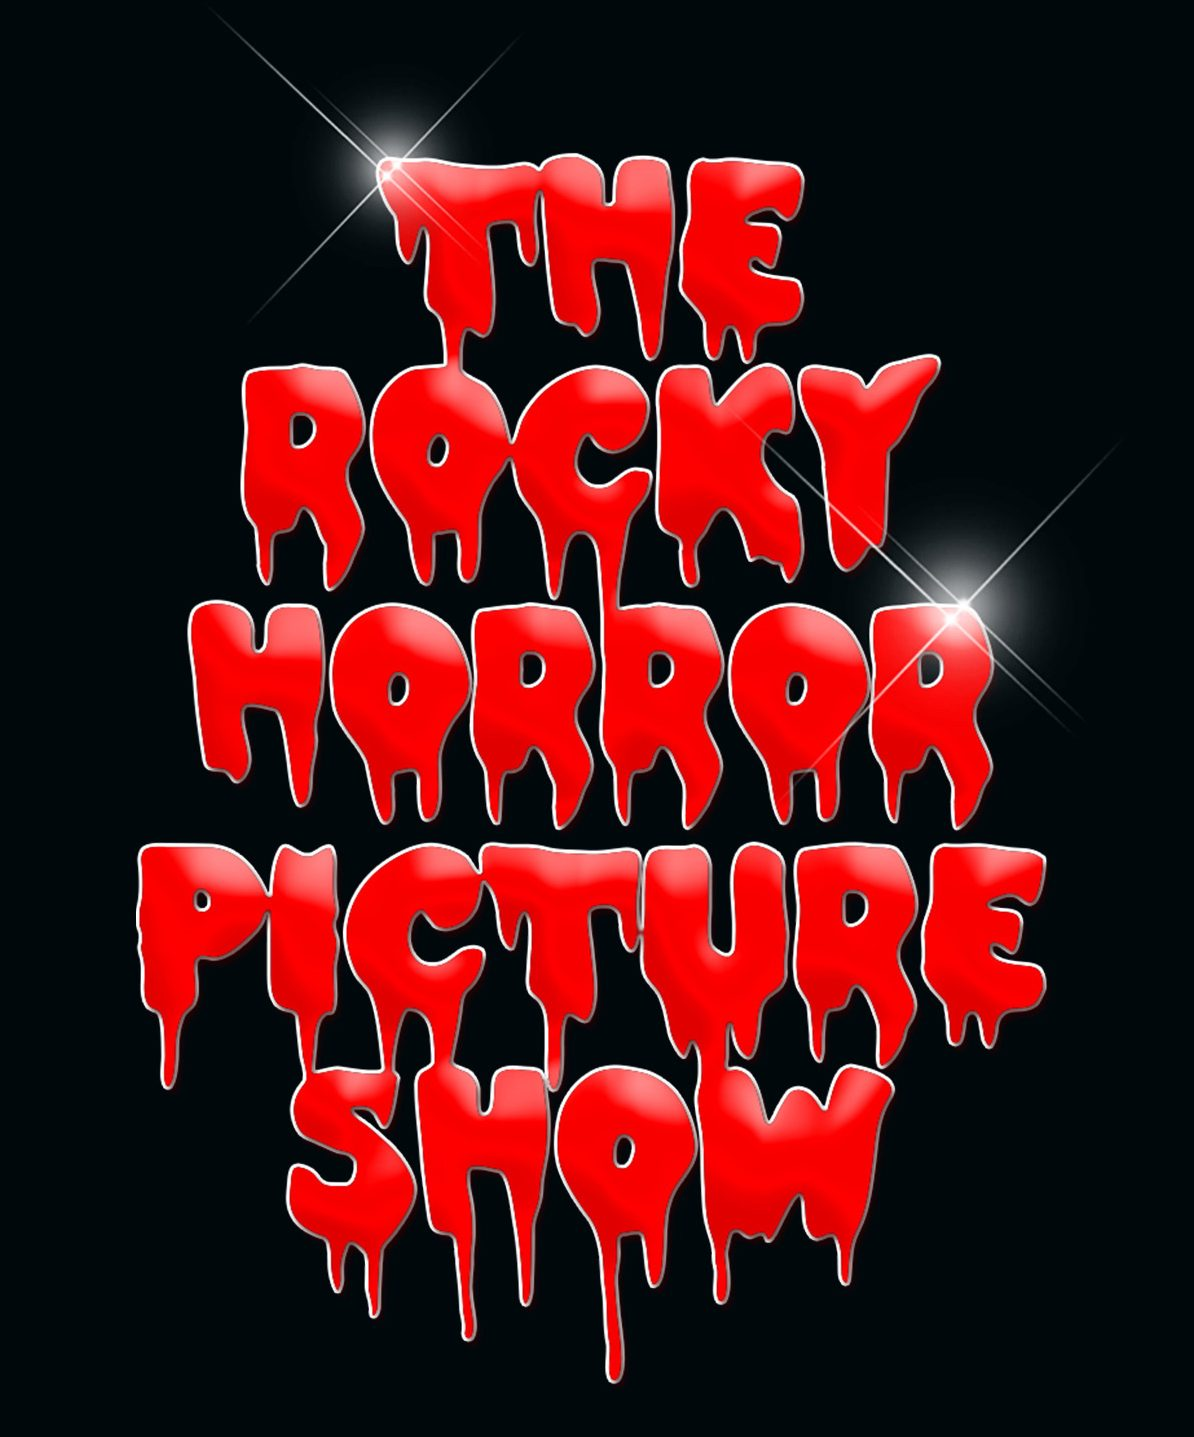 Rocky Horror Picture Show Coming to The Winter Garden Theatre